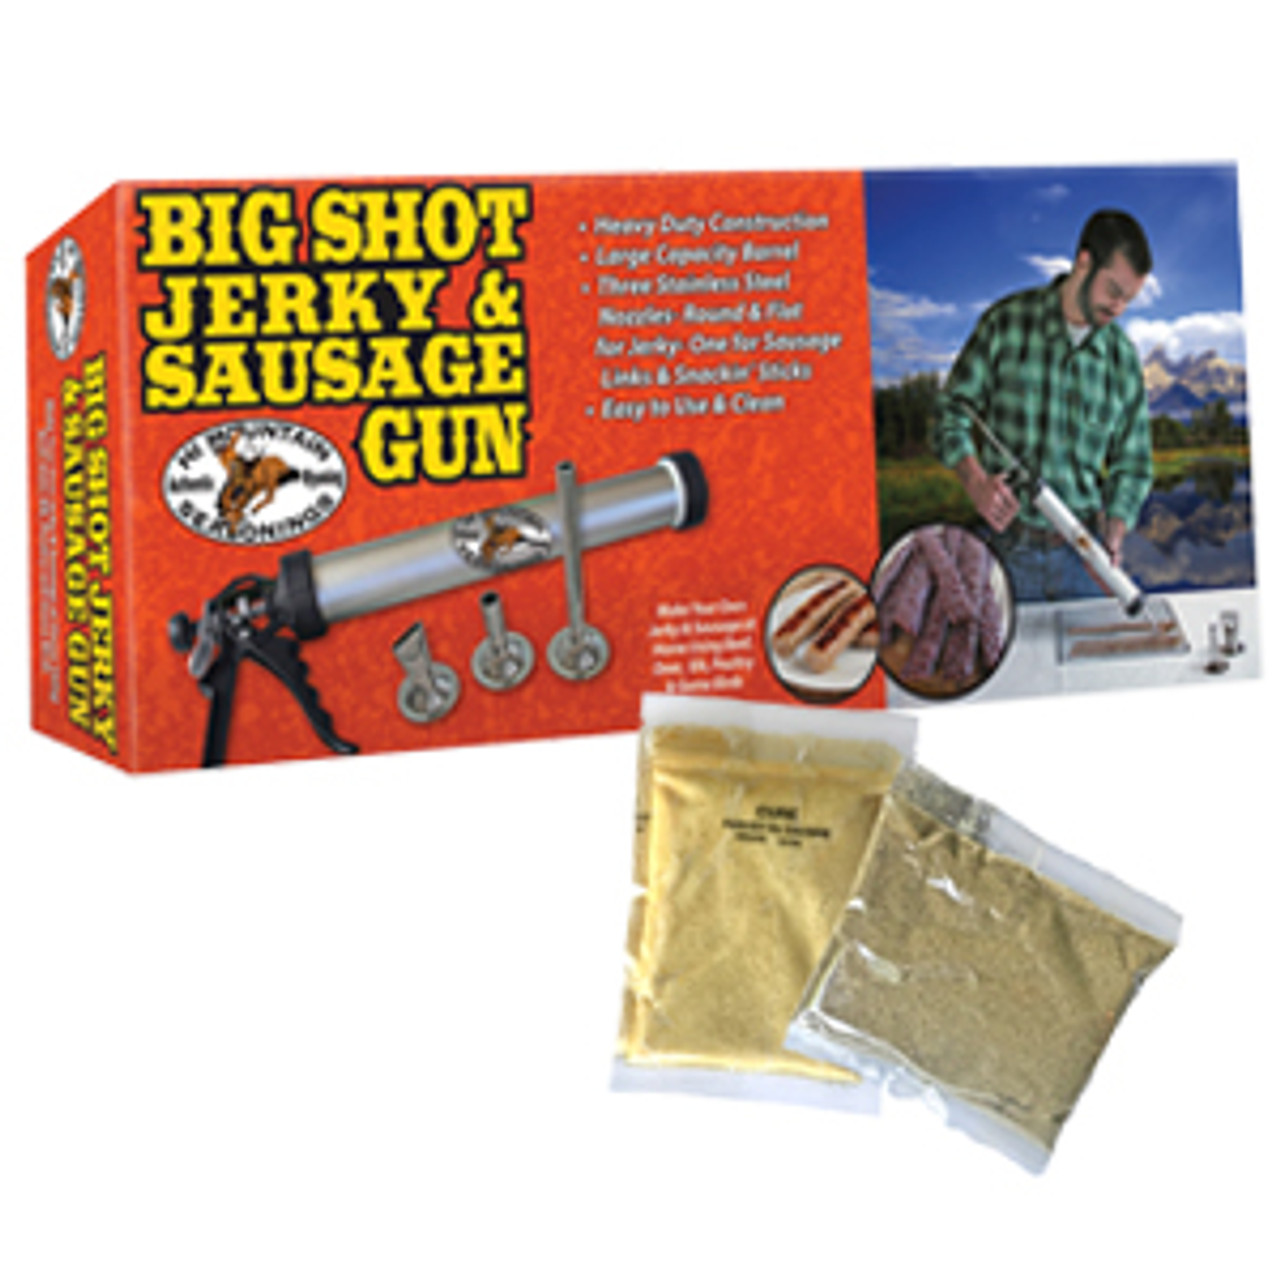 Big Shot Jerky & Sausage Gun